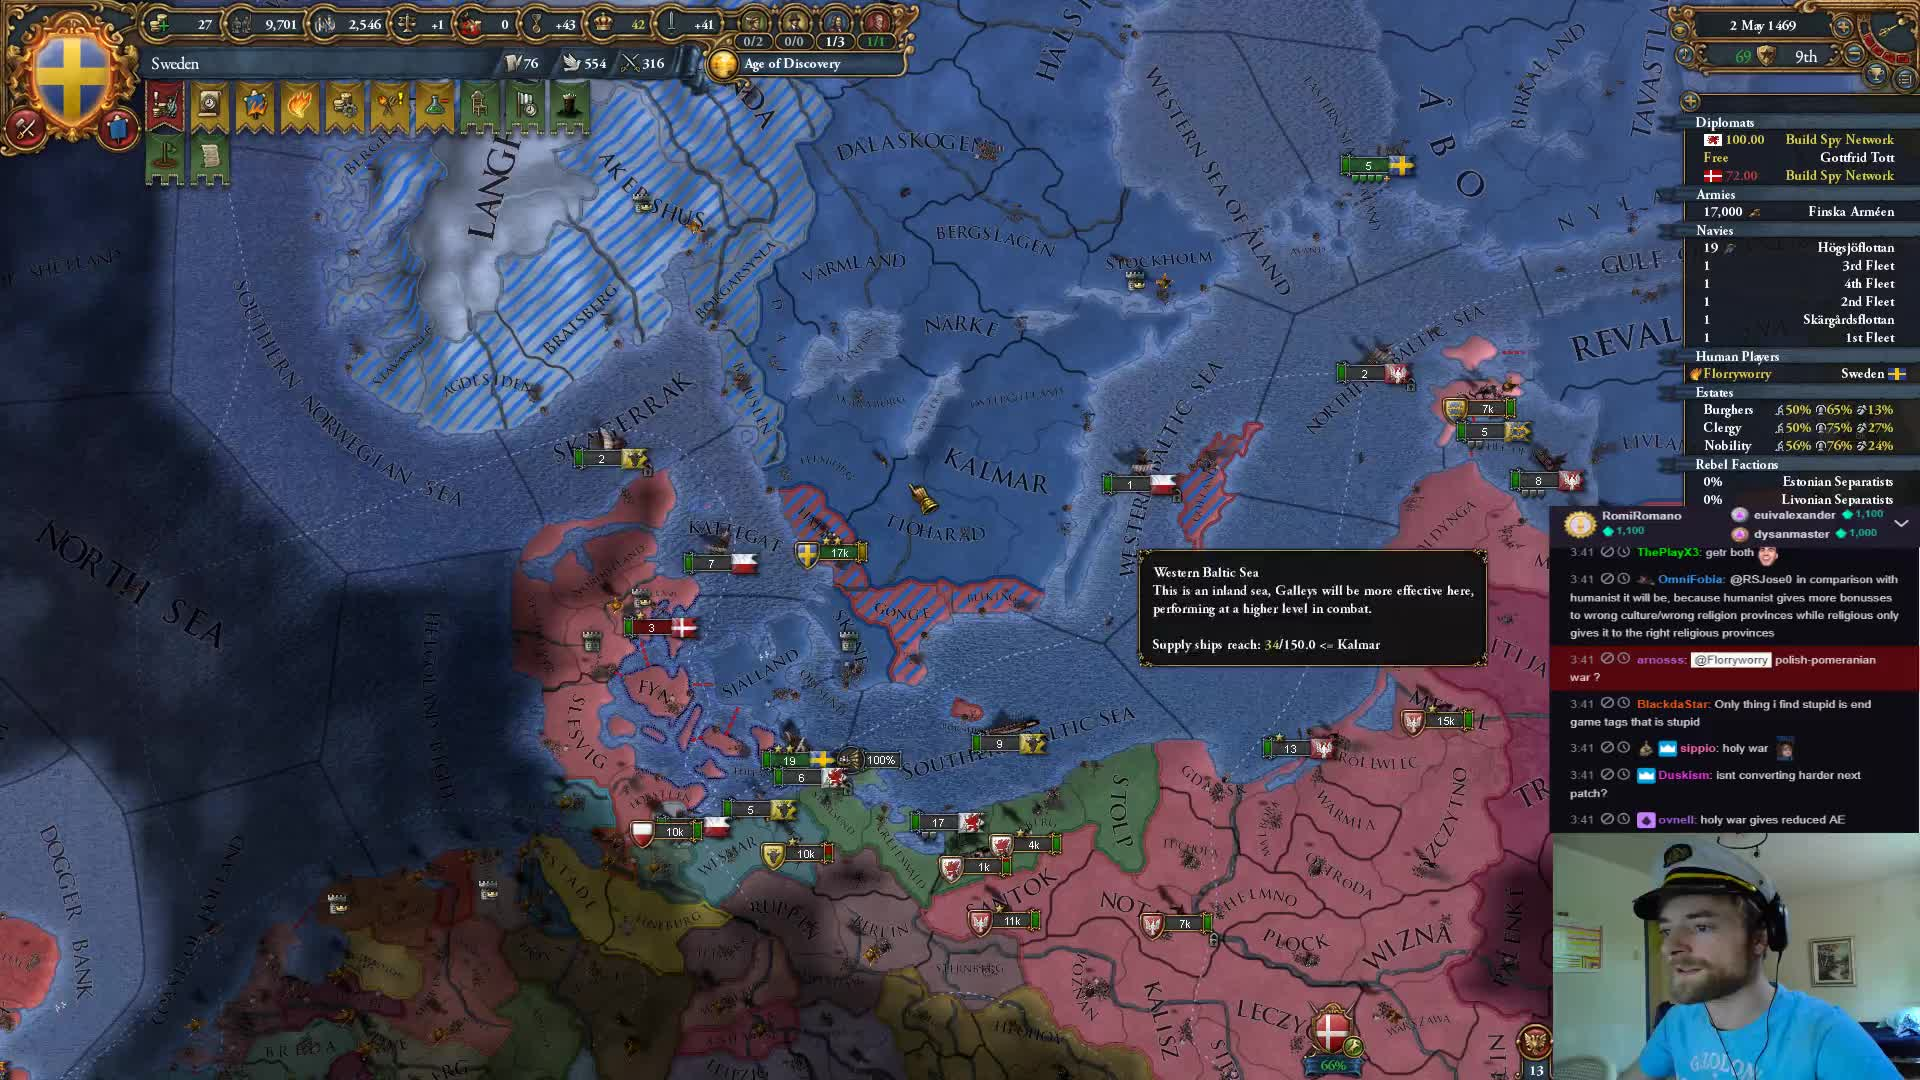 Florryworry - Sweden is REALLY not overpowered: Swedish